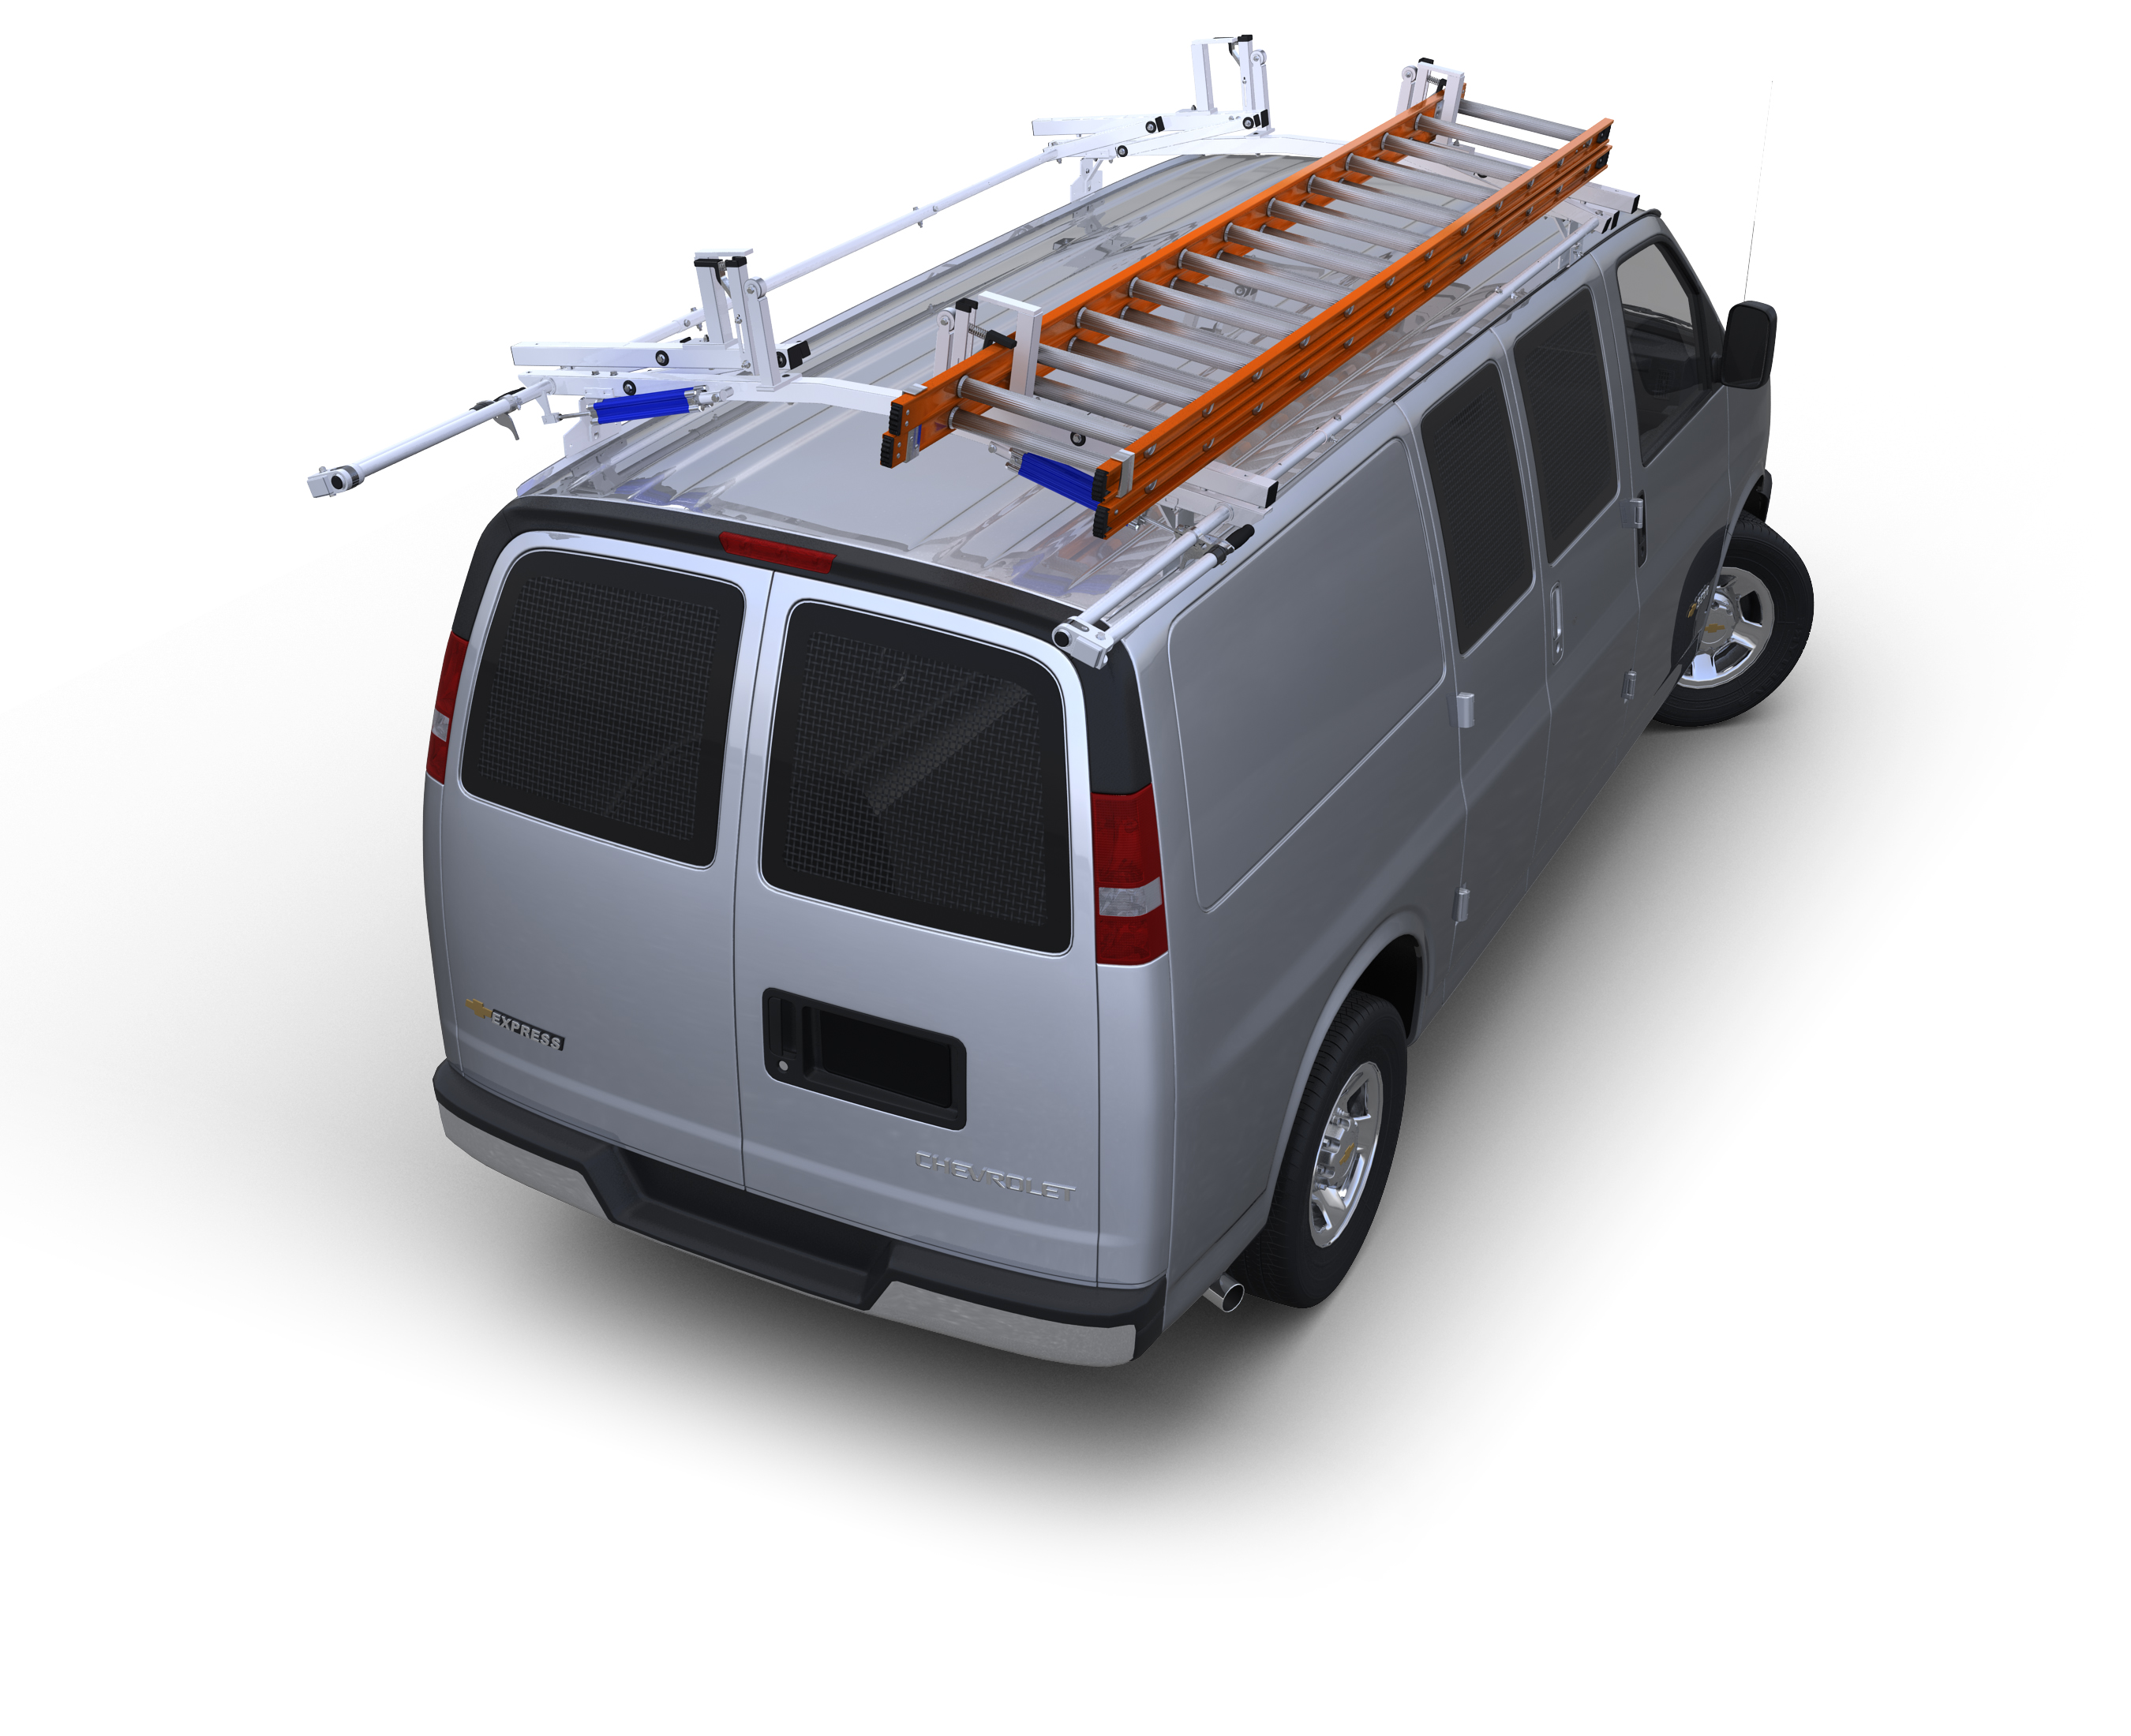 Self-Stacking Bulk Storage Bin Racks for High Roof Vans